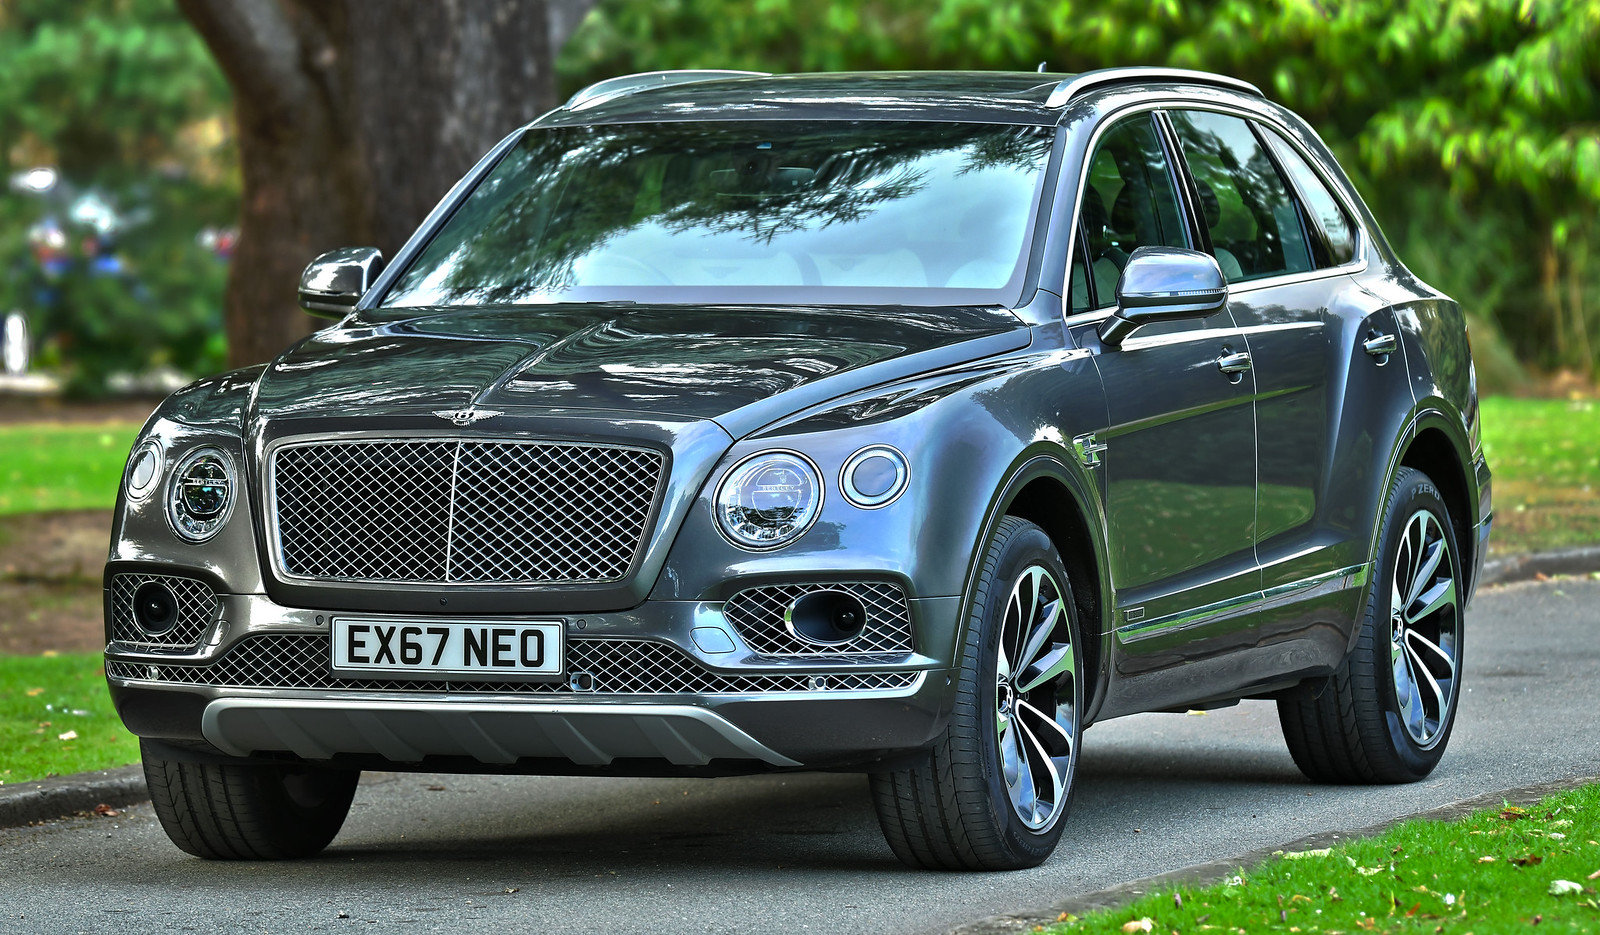 2017 Bentley Bentayga 4.0 Twin Turbo V8 Diesel 4x4 For Sale (picture 1 of 6)